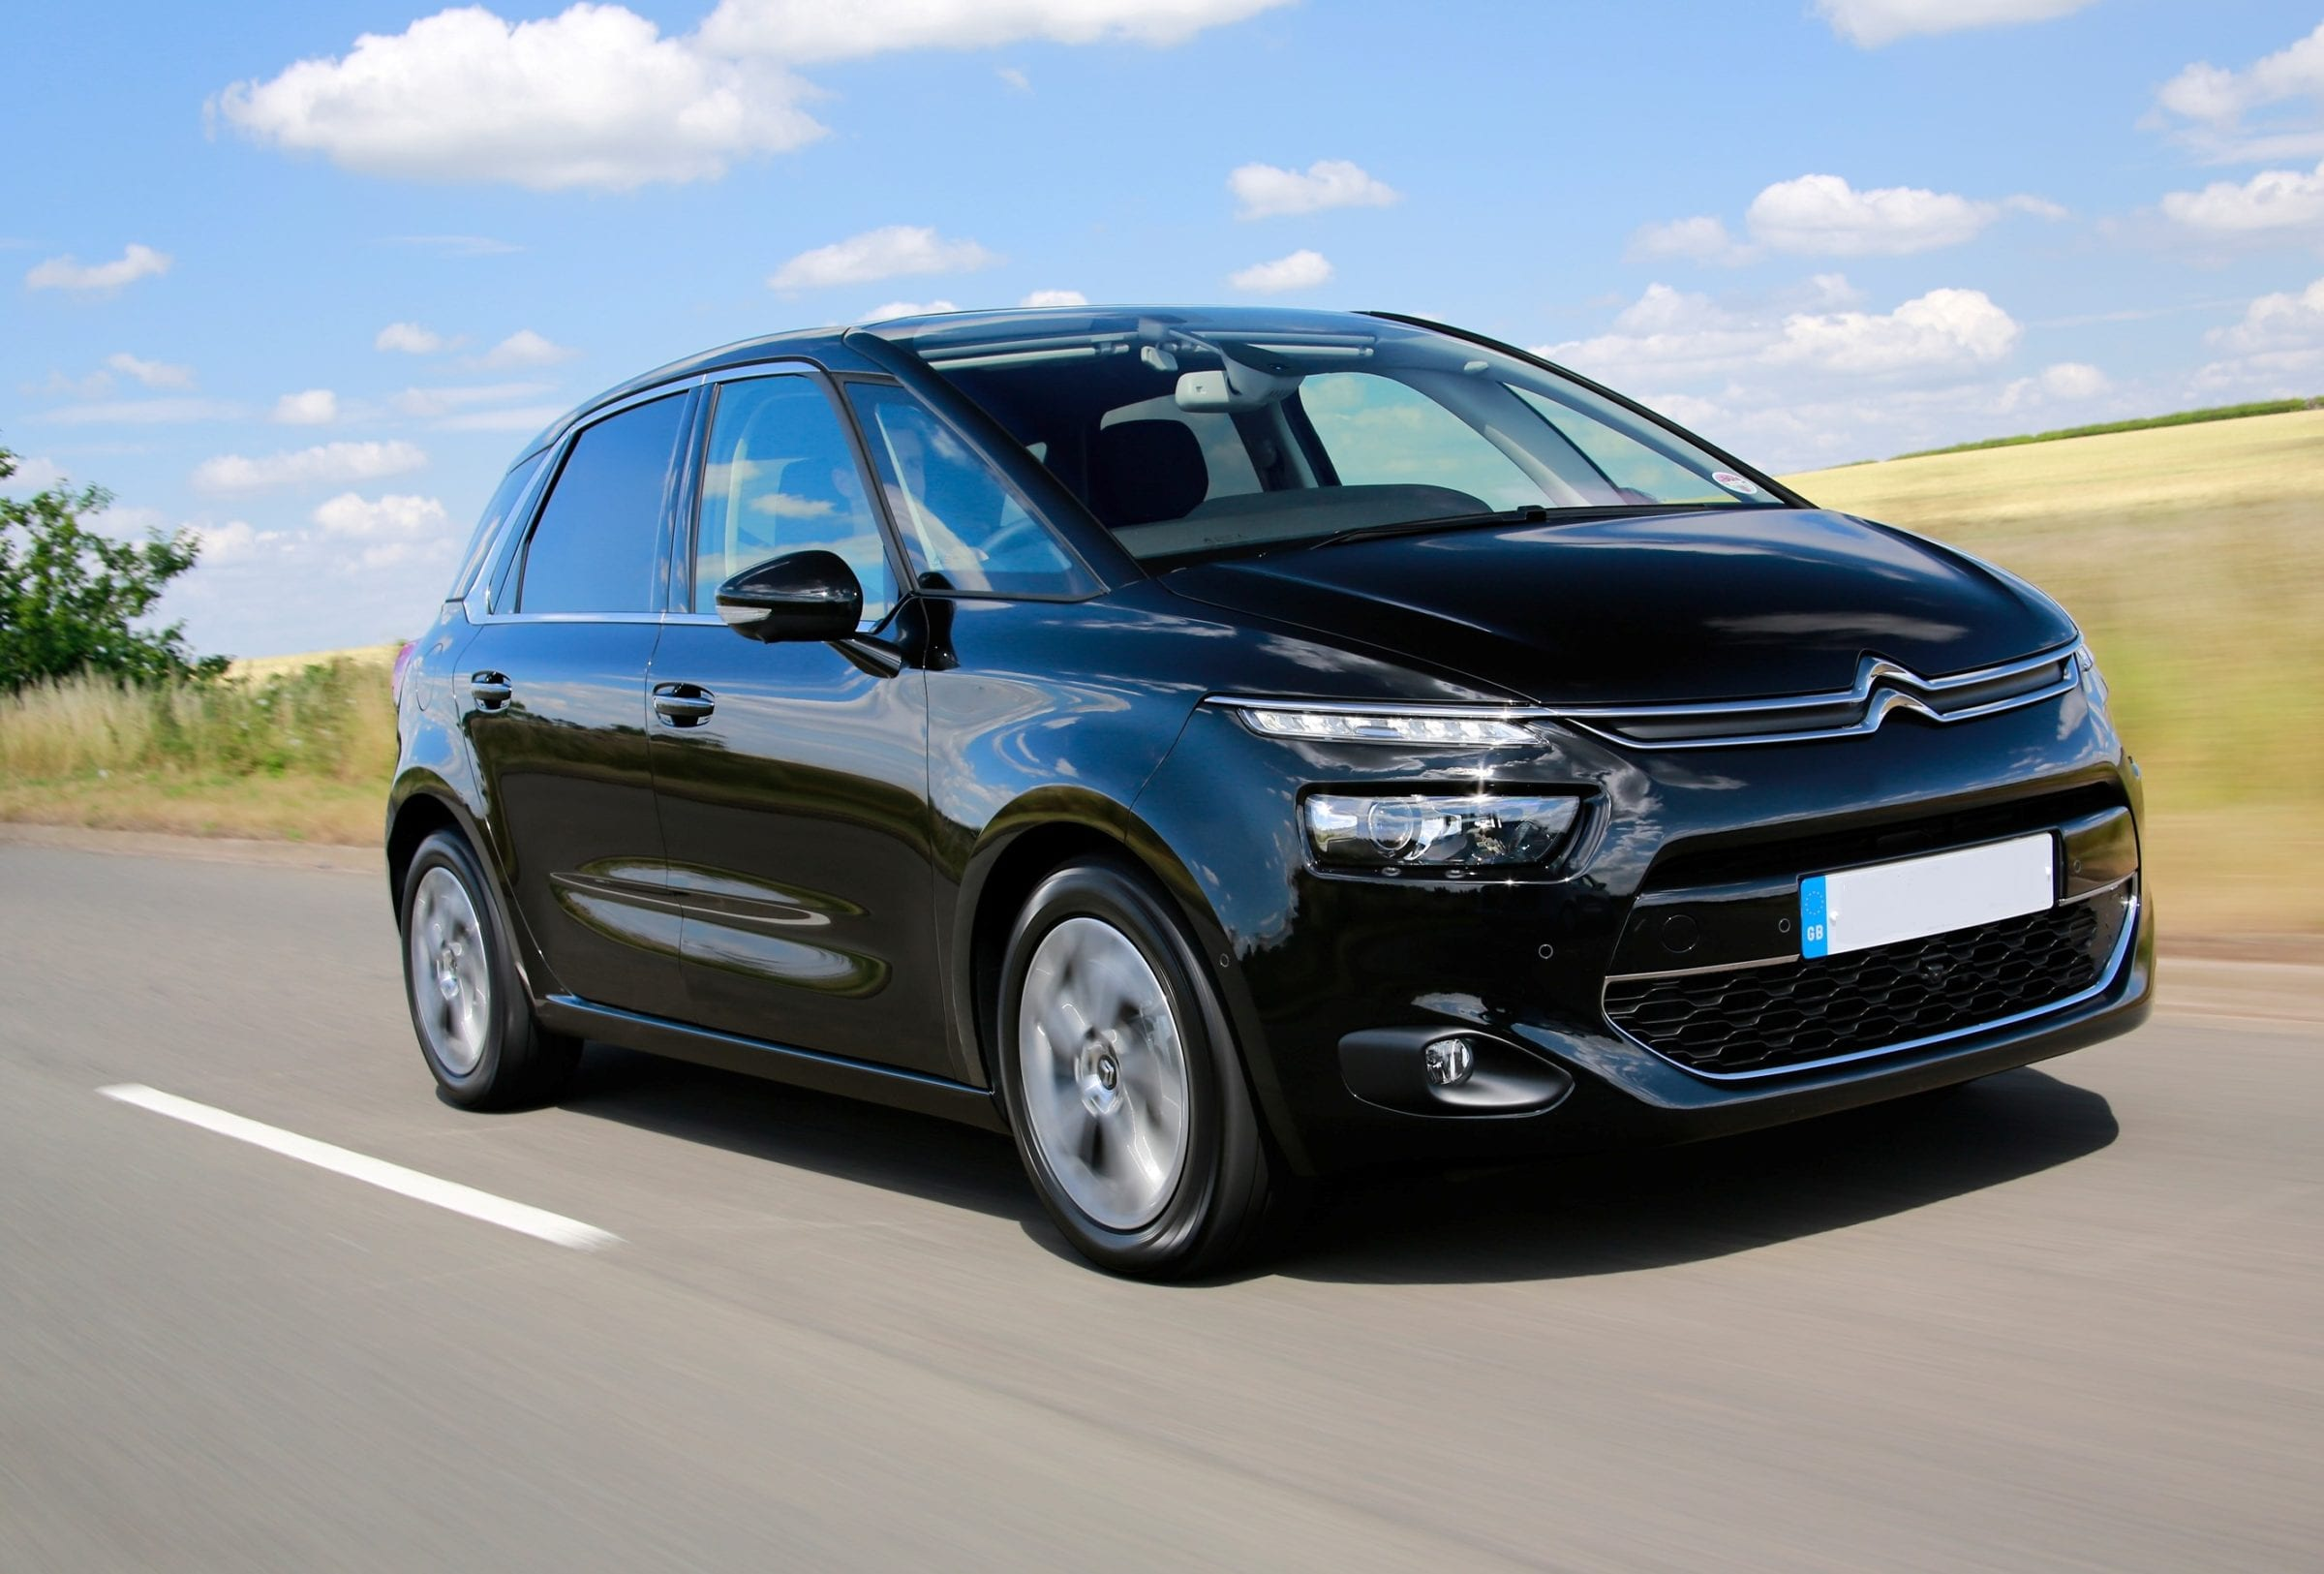 Citroen for a while now has been producing some good cars – and not before  time might I say. So when I was dropped a Citroen C4 Picasso recently I was  ...